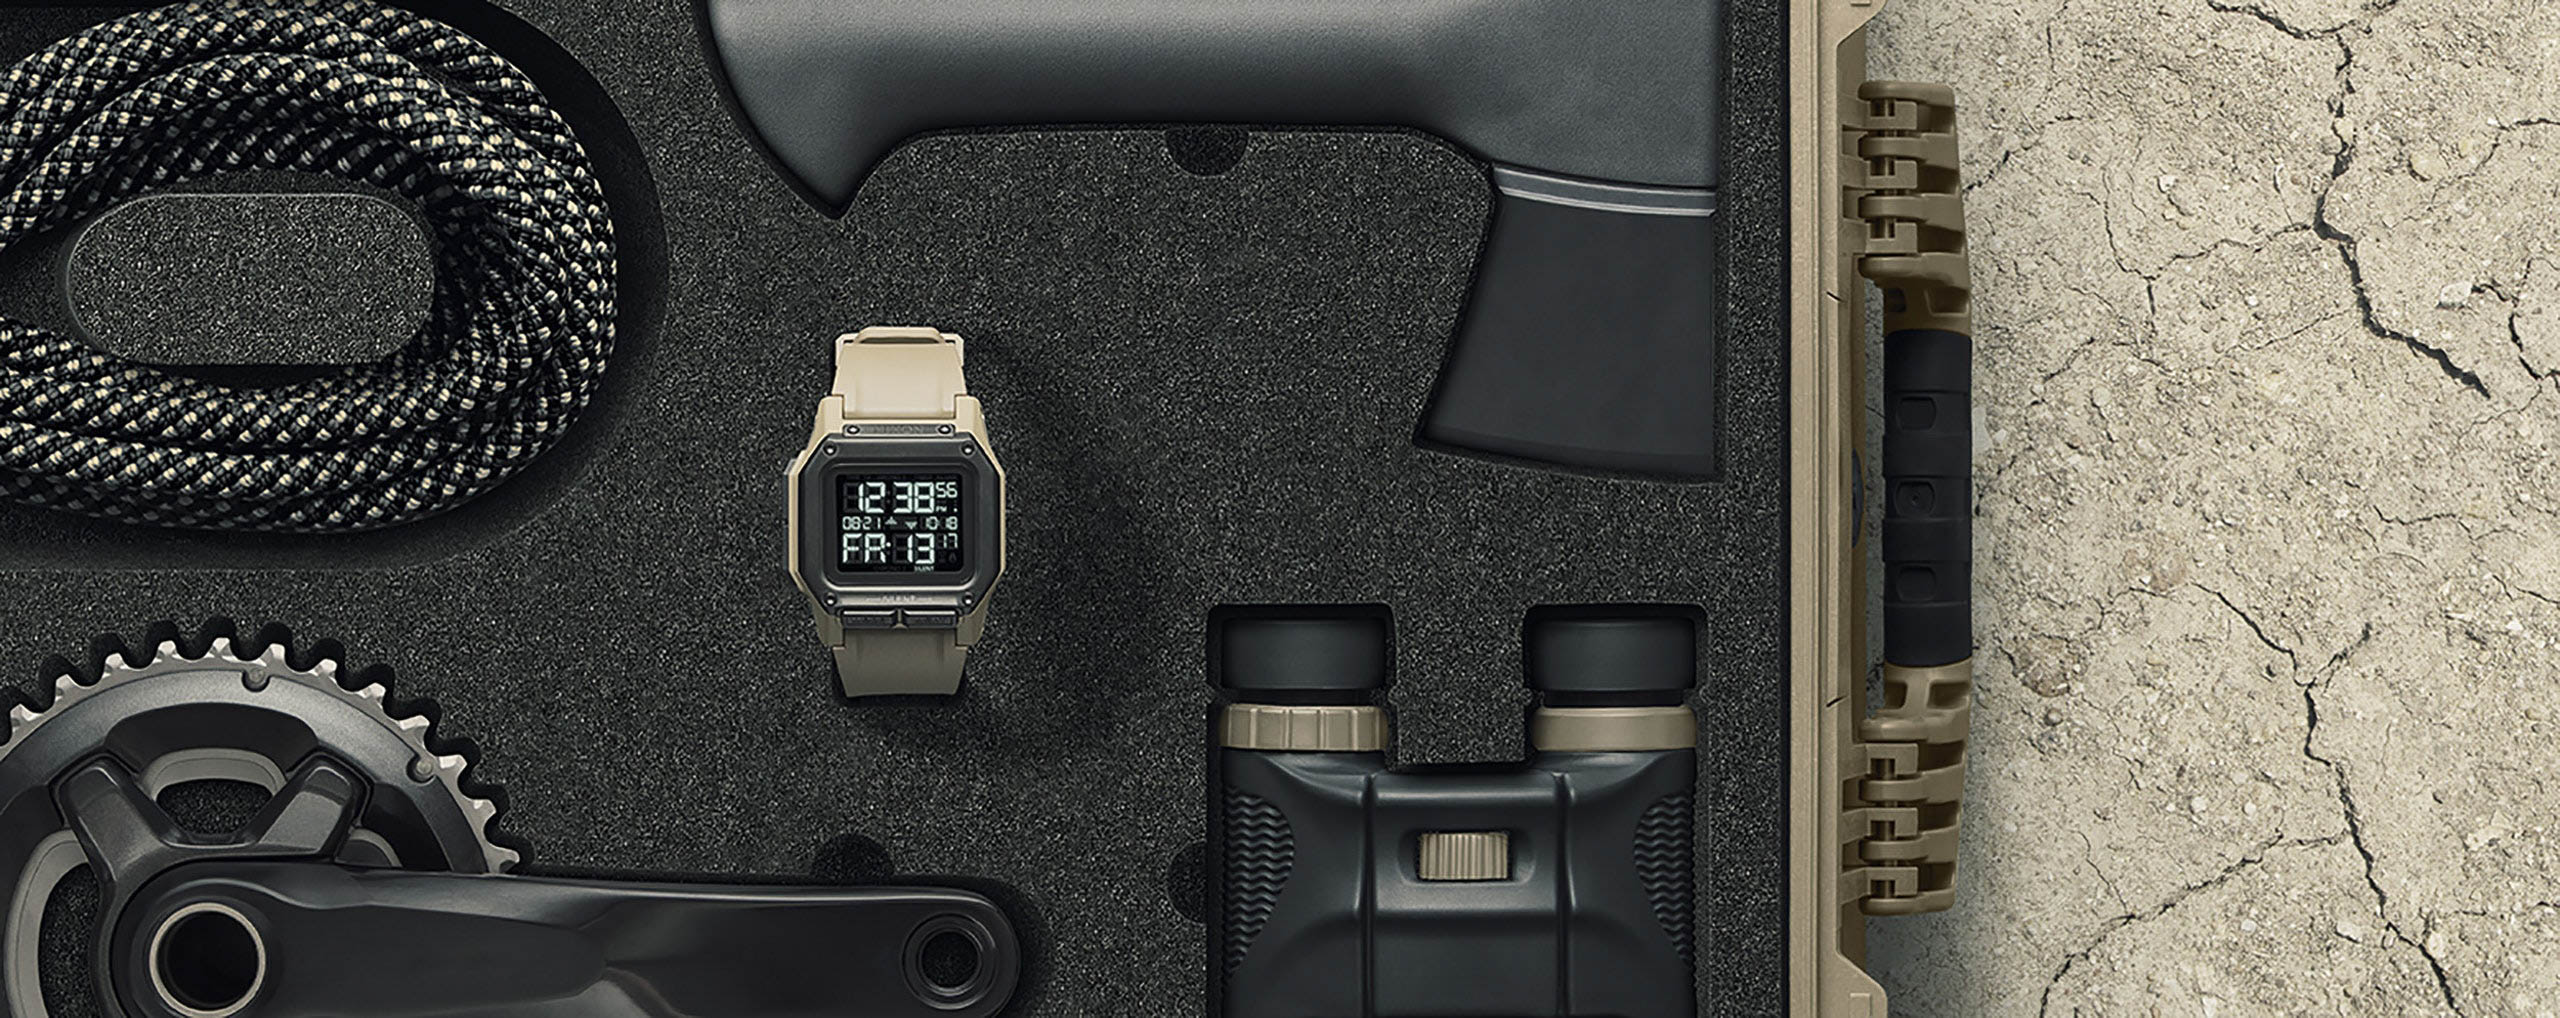 Nixon Regulus Watch in survival kit